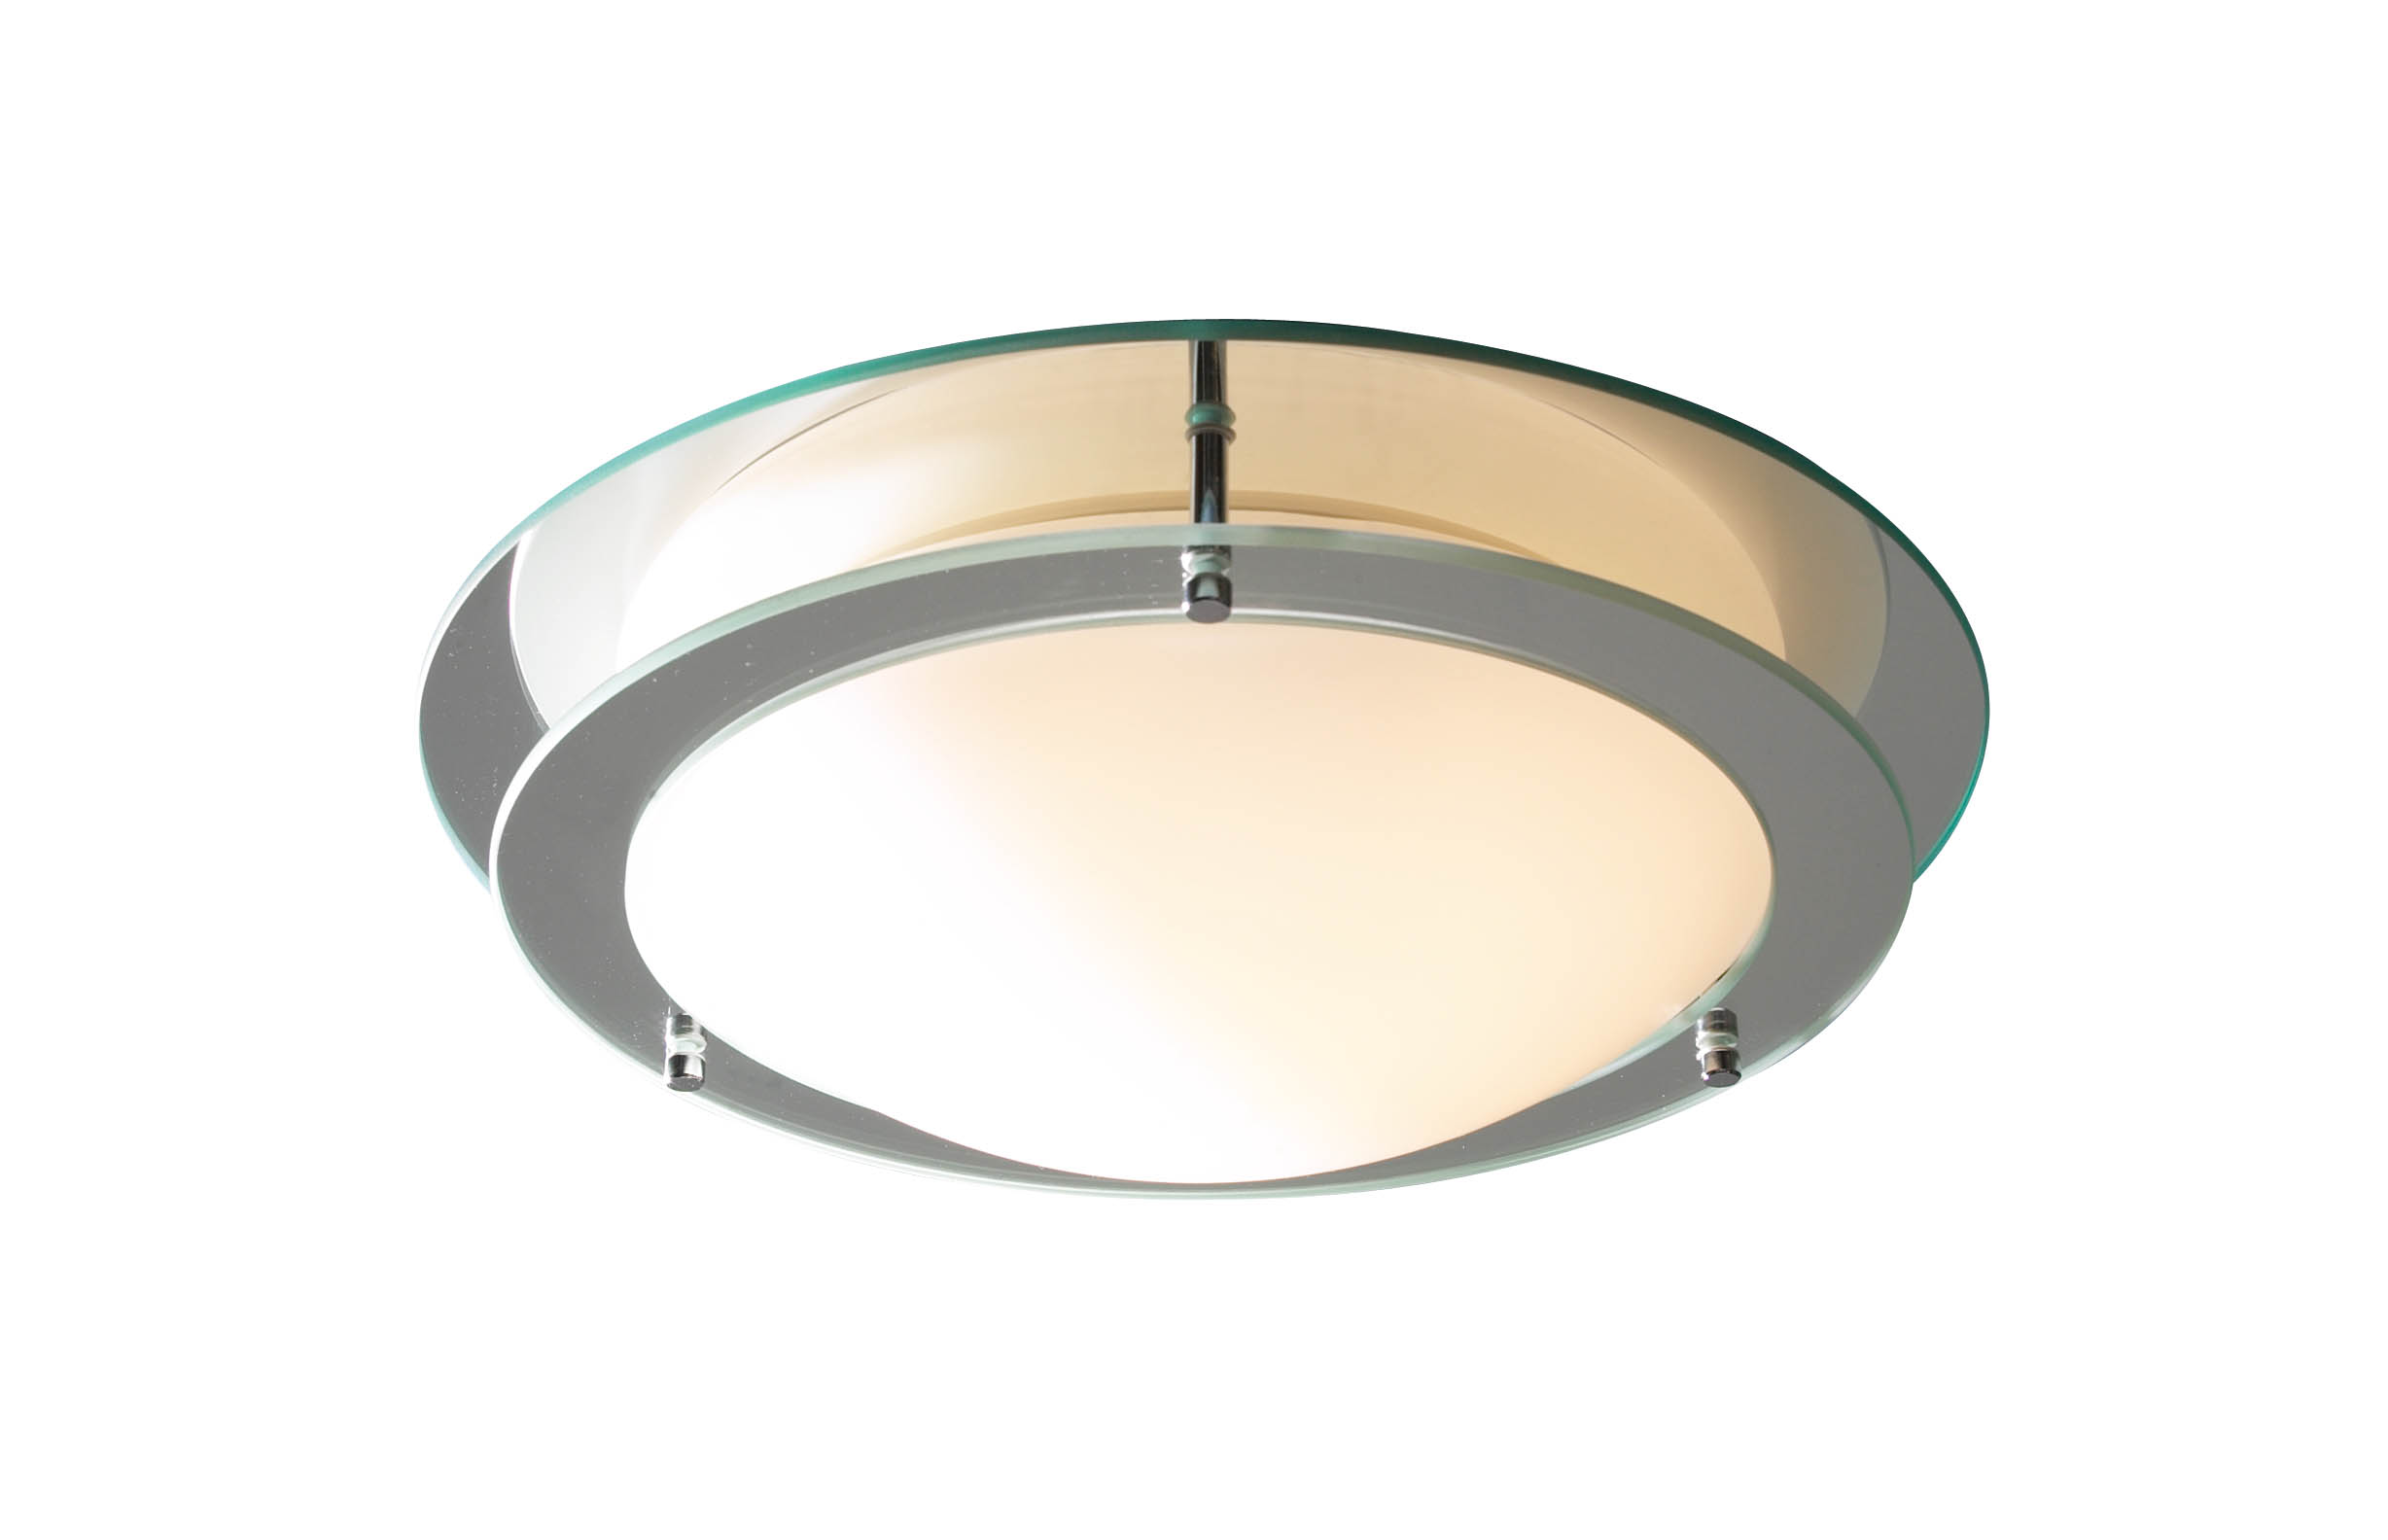 Libra Mirrored Glass Ip44 Flush Ceiling Light Lib50 050555